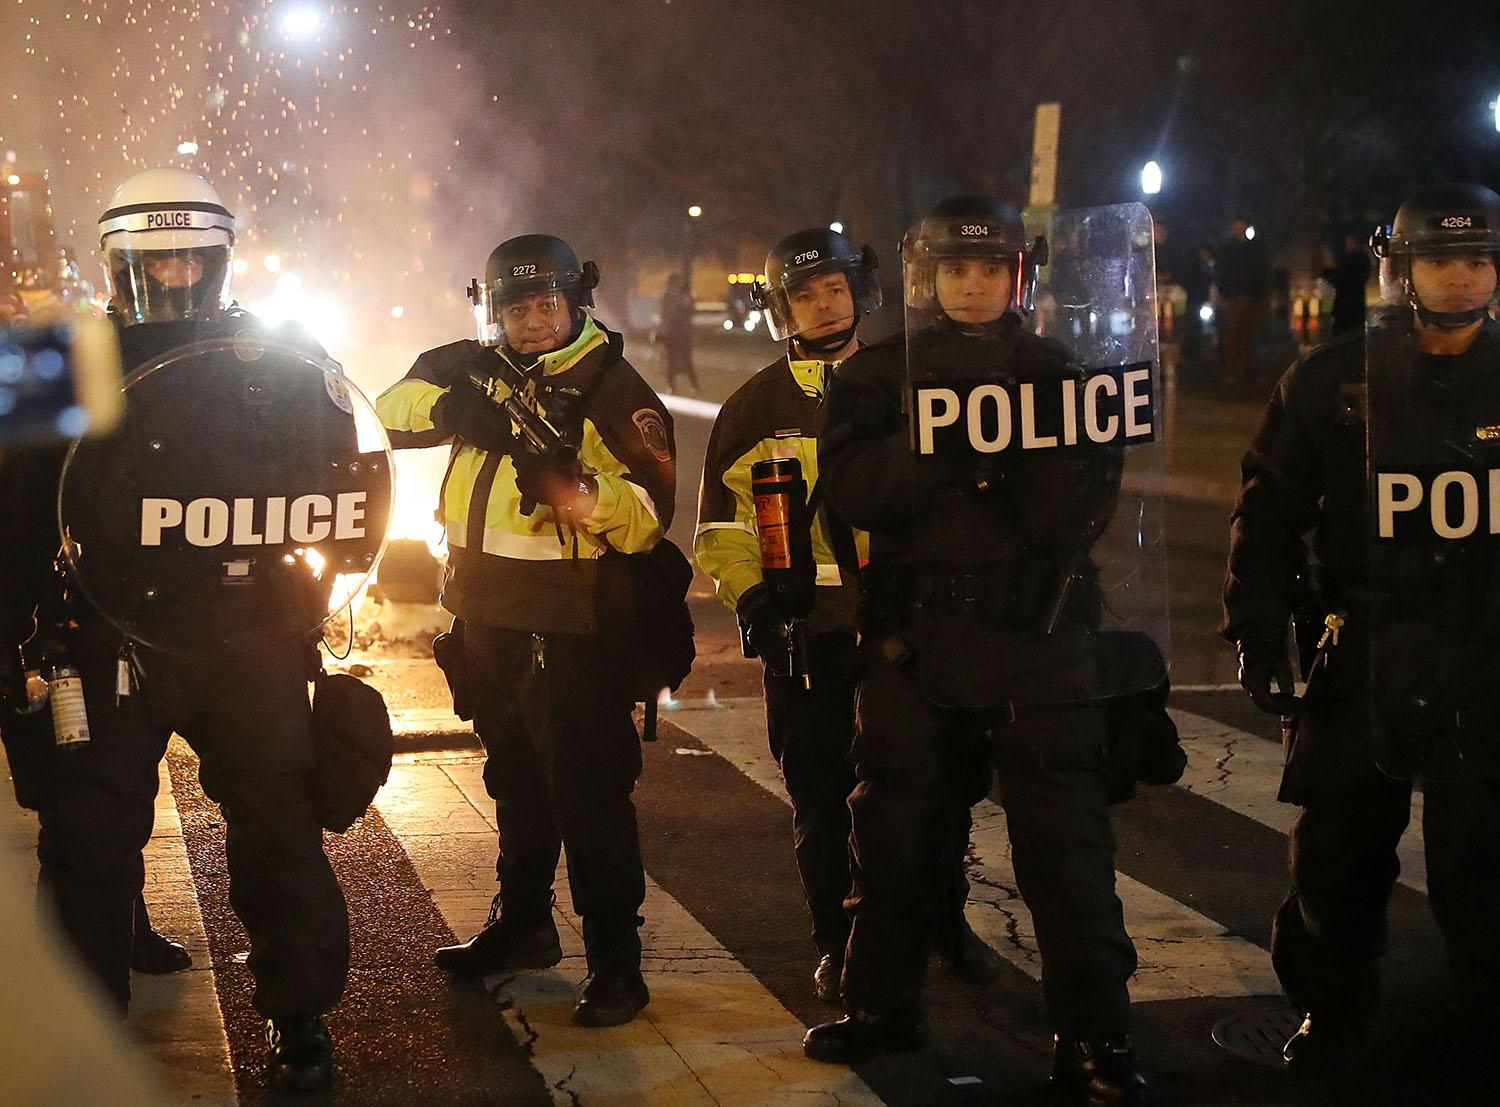 <p>Police officers try to clear the street as protesters make themselves heard following the inauguration of President Donald Trump on January 20, 2017 in Washington, DC. (Joe Raedle/Getty Images) </p>